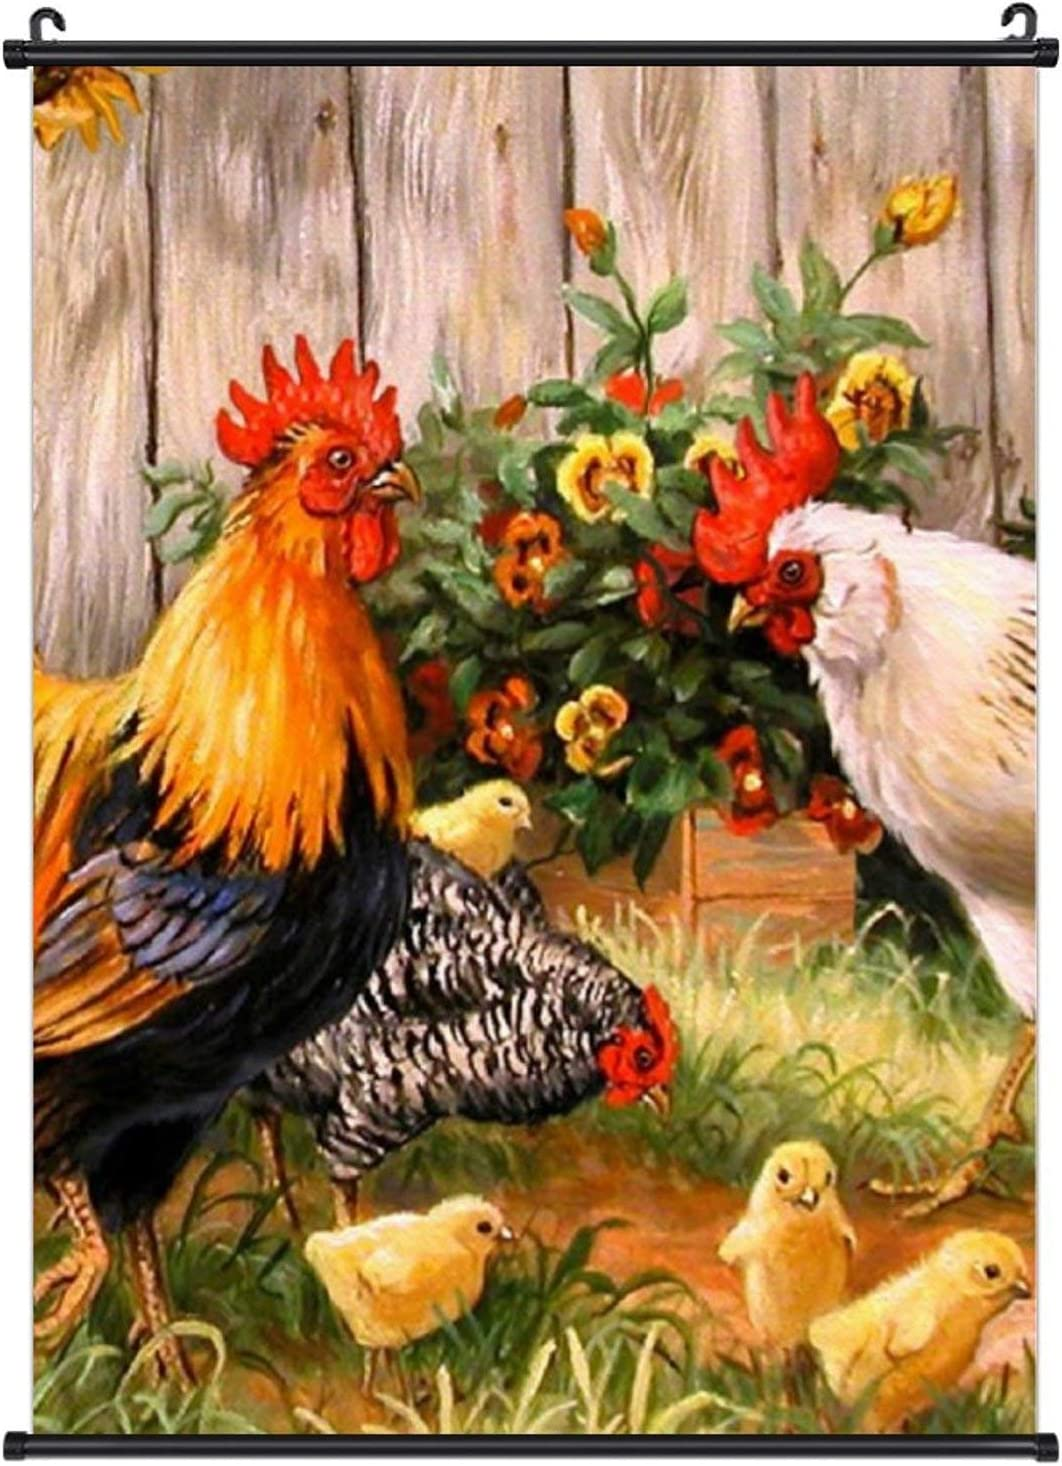 NiYoung Beautiful Poster Hanging Painting Canvas Wall Art Scroll Poster Home Decor for Office Bedroom Living Room, Chicken Rooster Garden Flowers Painting, 20x28 Inch